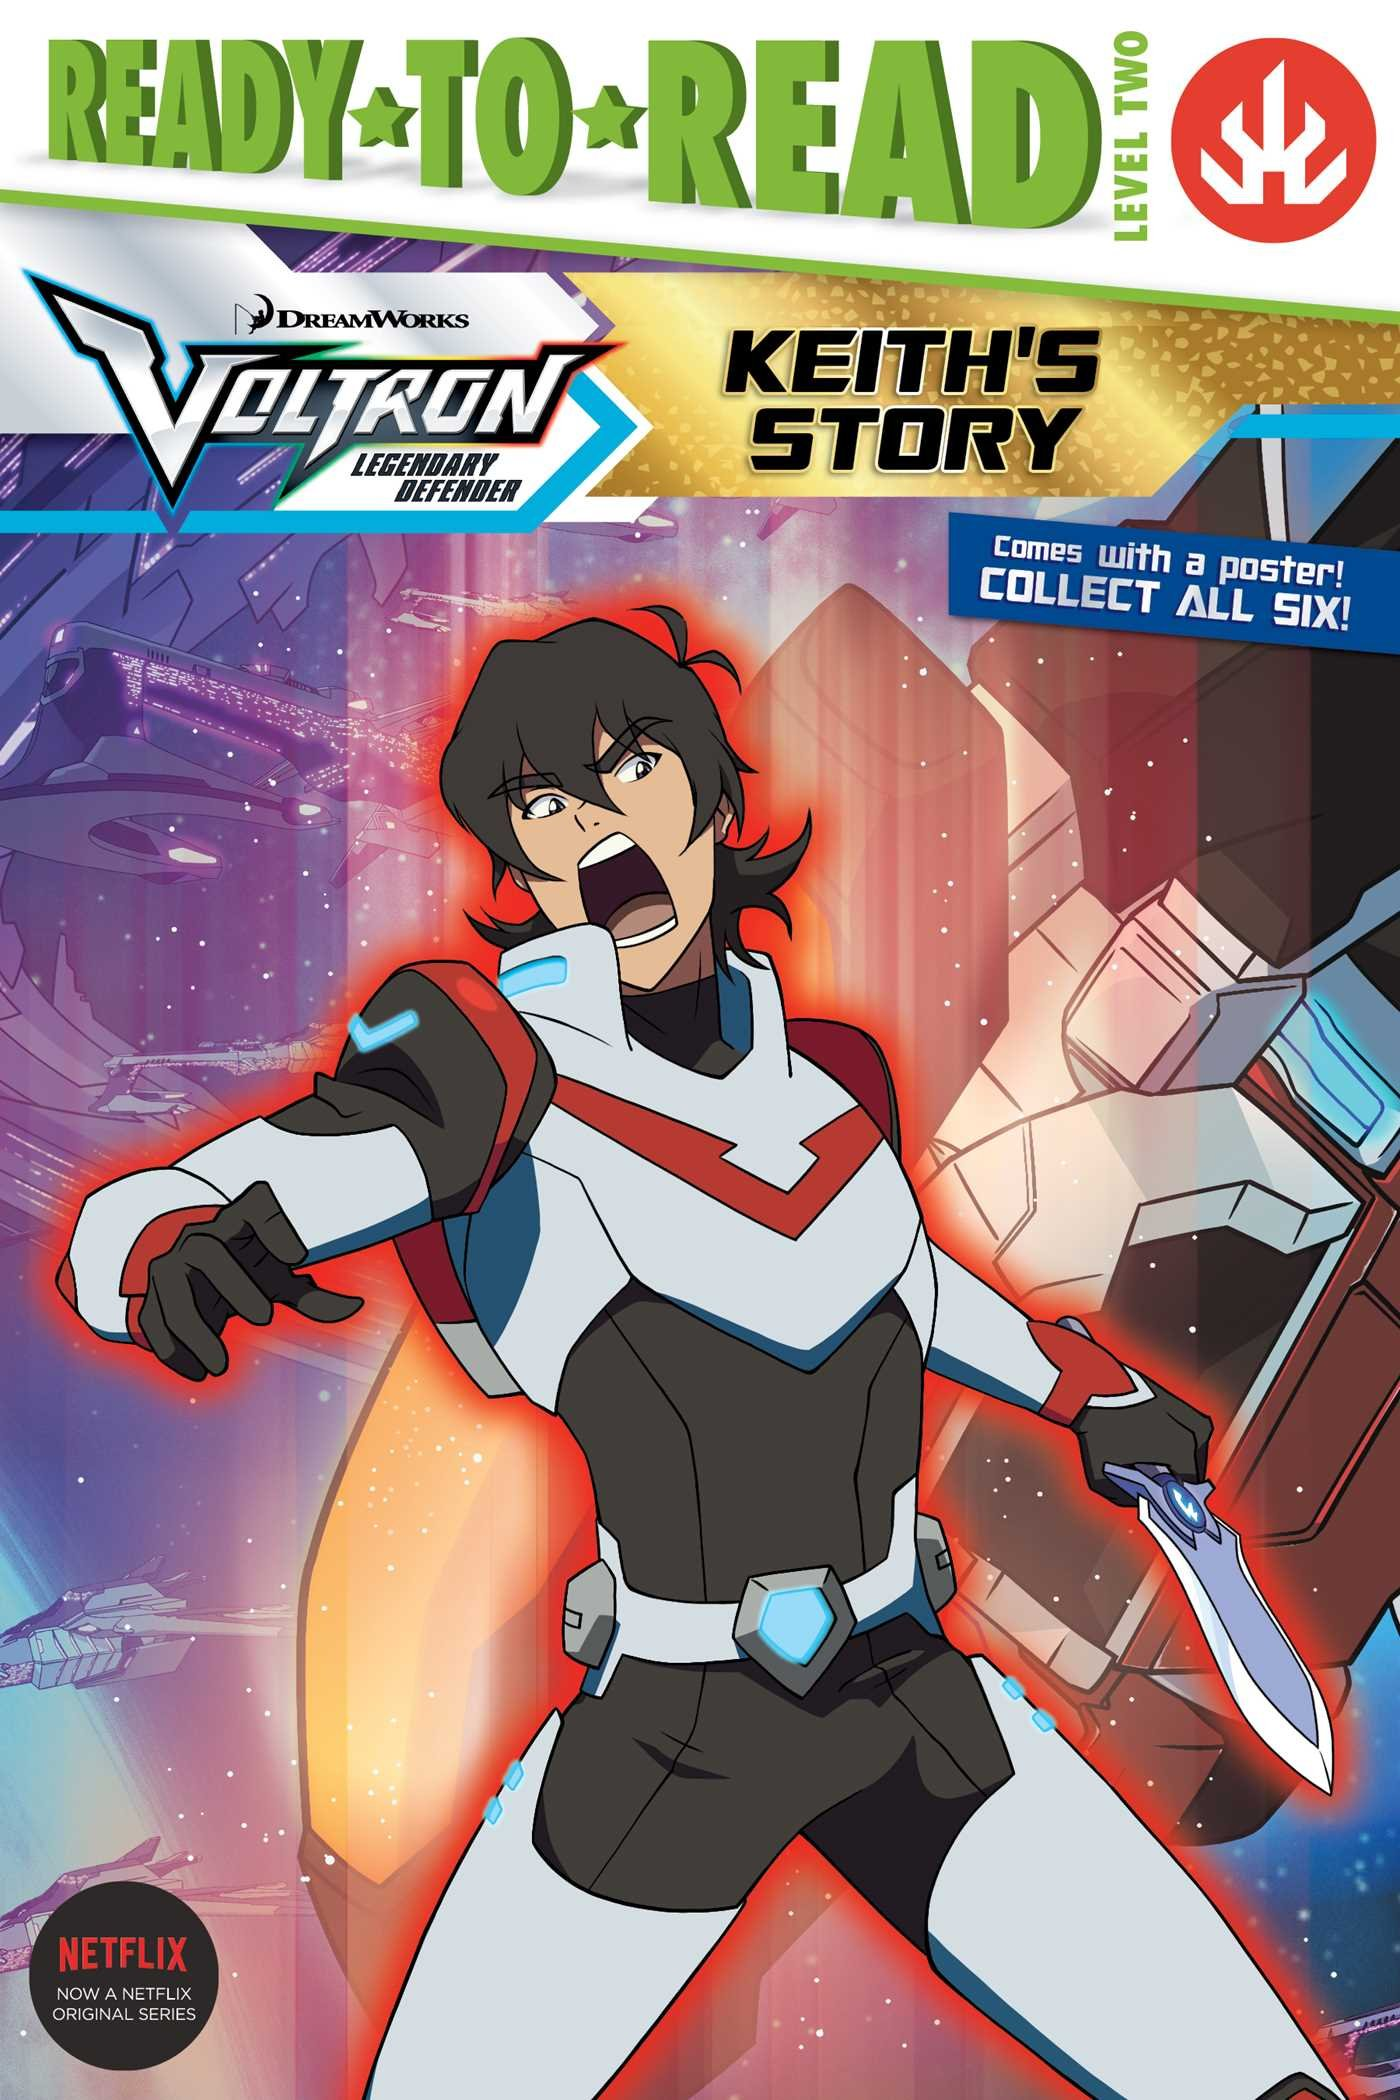 Keith's Story (Voltron Legendary Defender: Ready-to-Read Level 2)